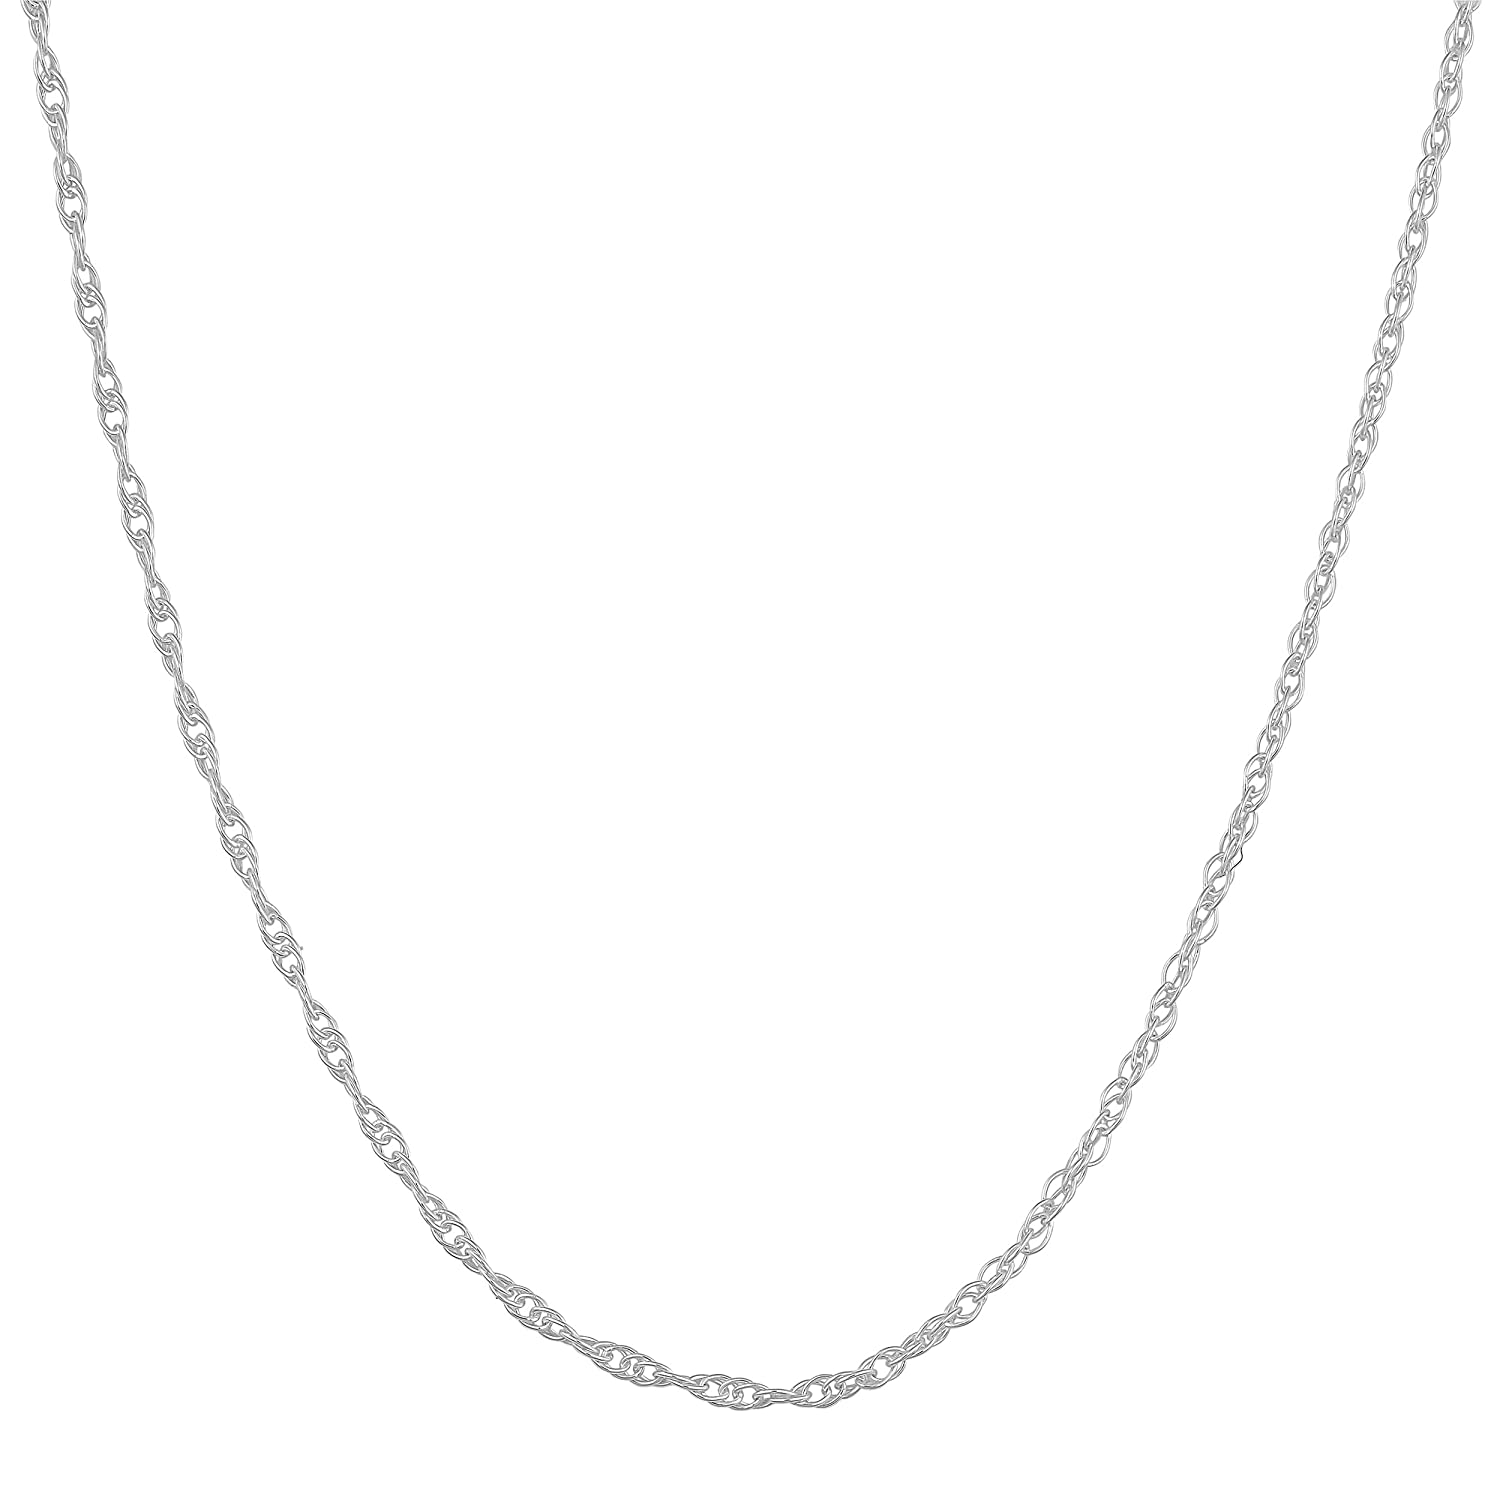 Sterling Silver 1.1mm Rope Chain (14, 16, 18, 20, 22, 24 or 30 inch in white, yellow or rose)